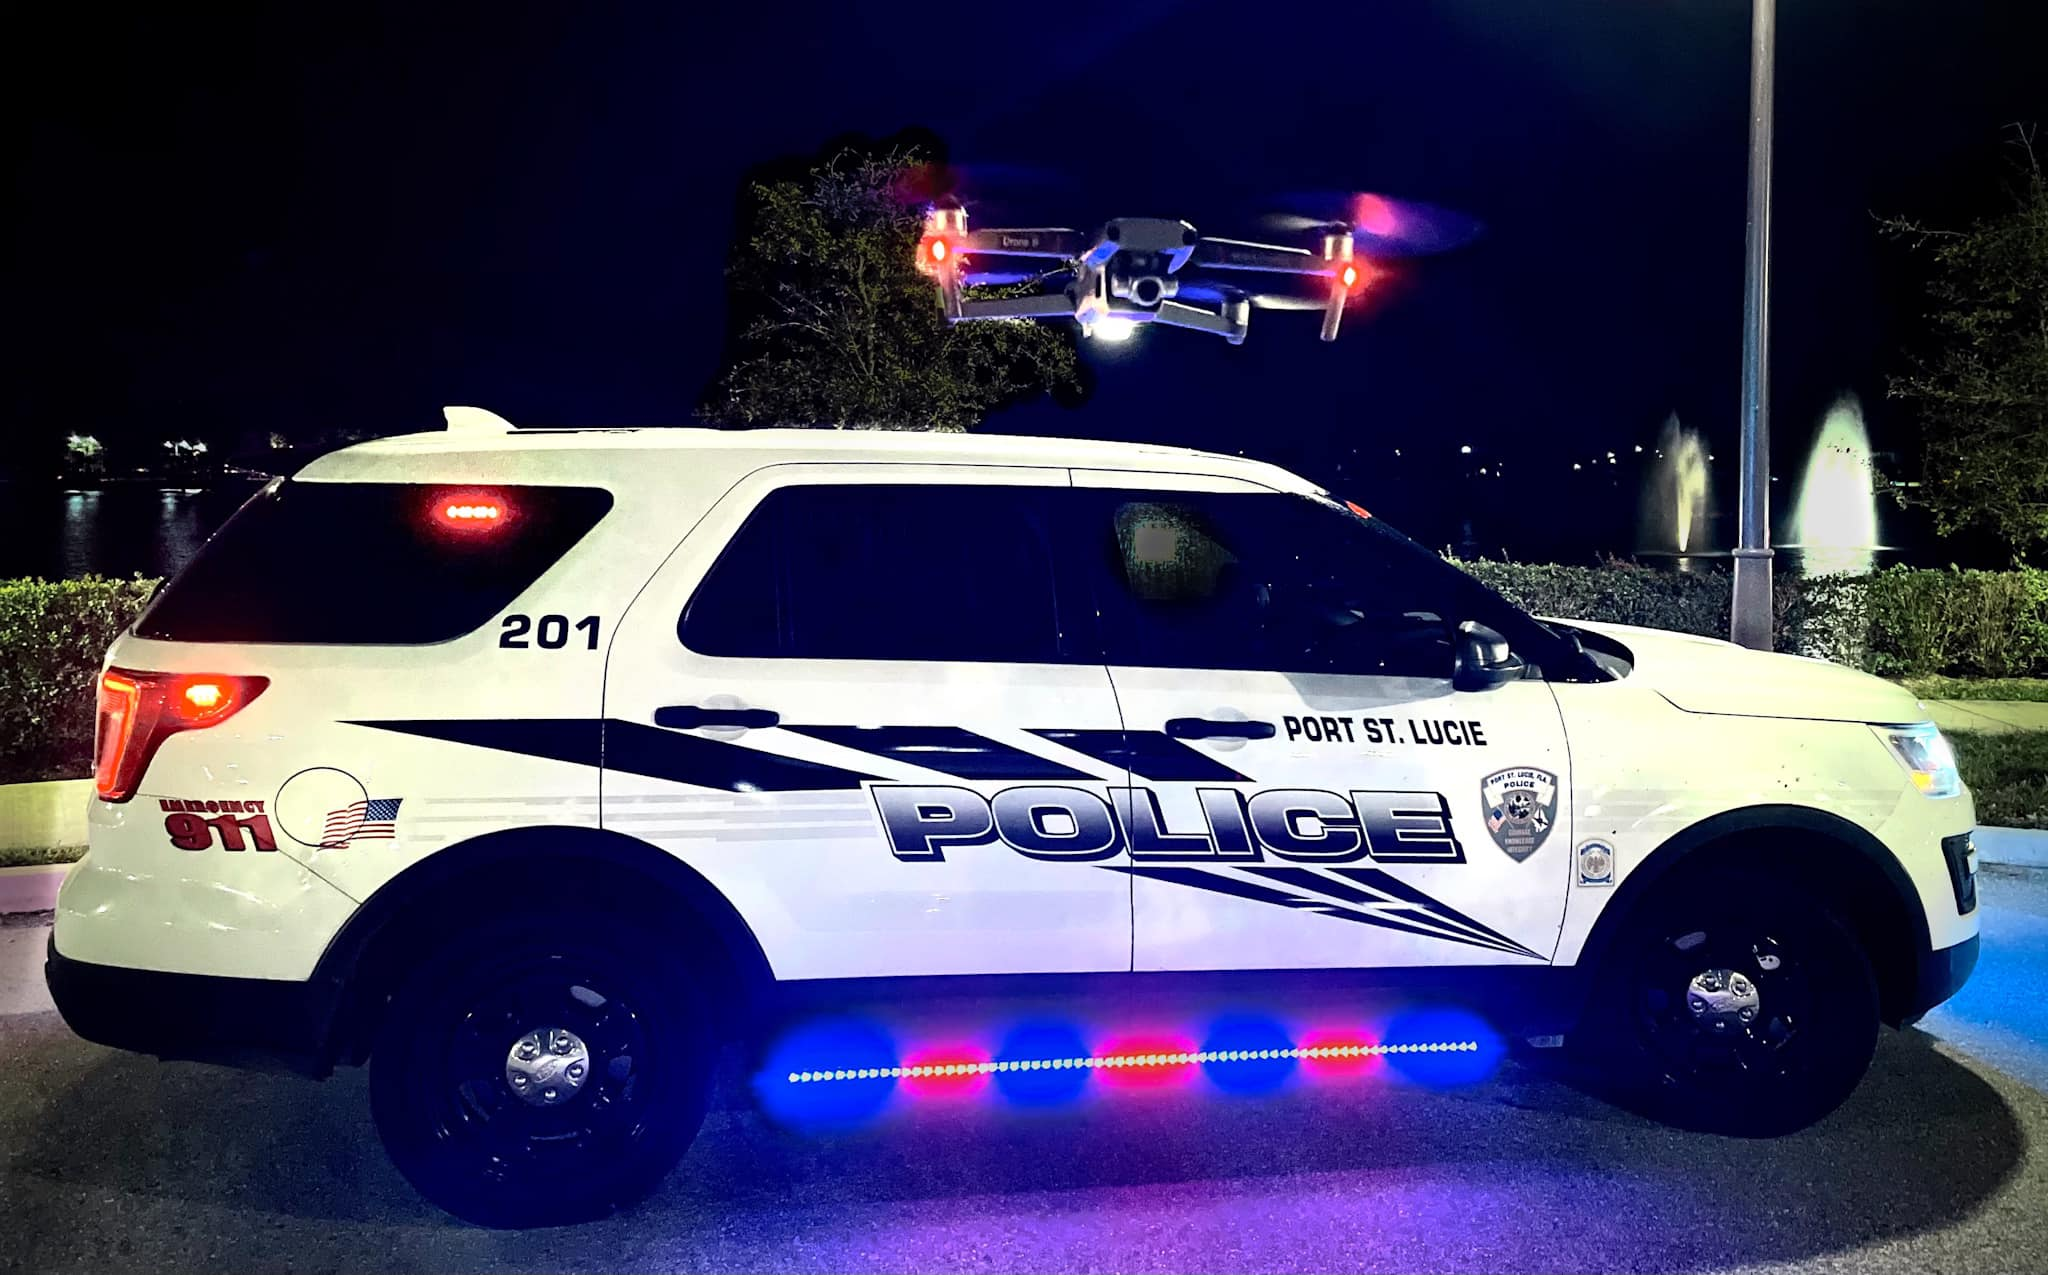 Police drone helps to find two young children who were missing in Florida